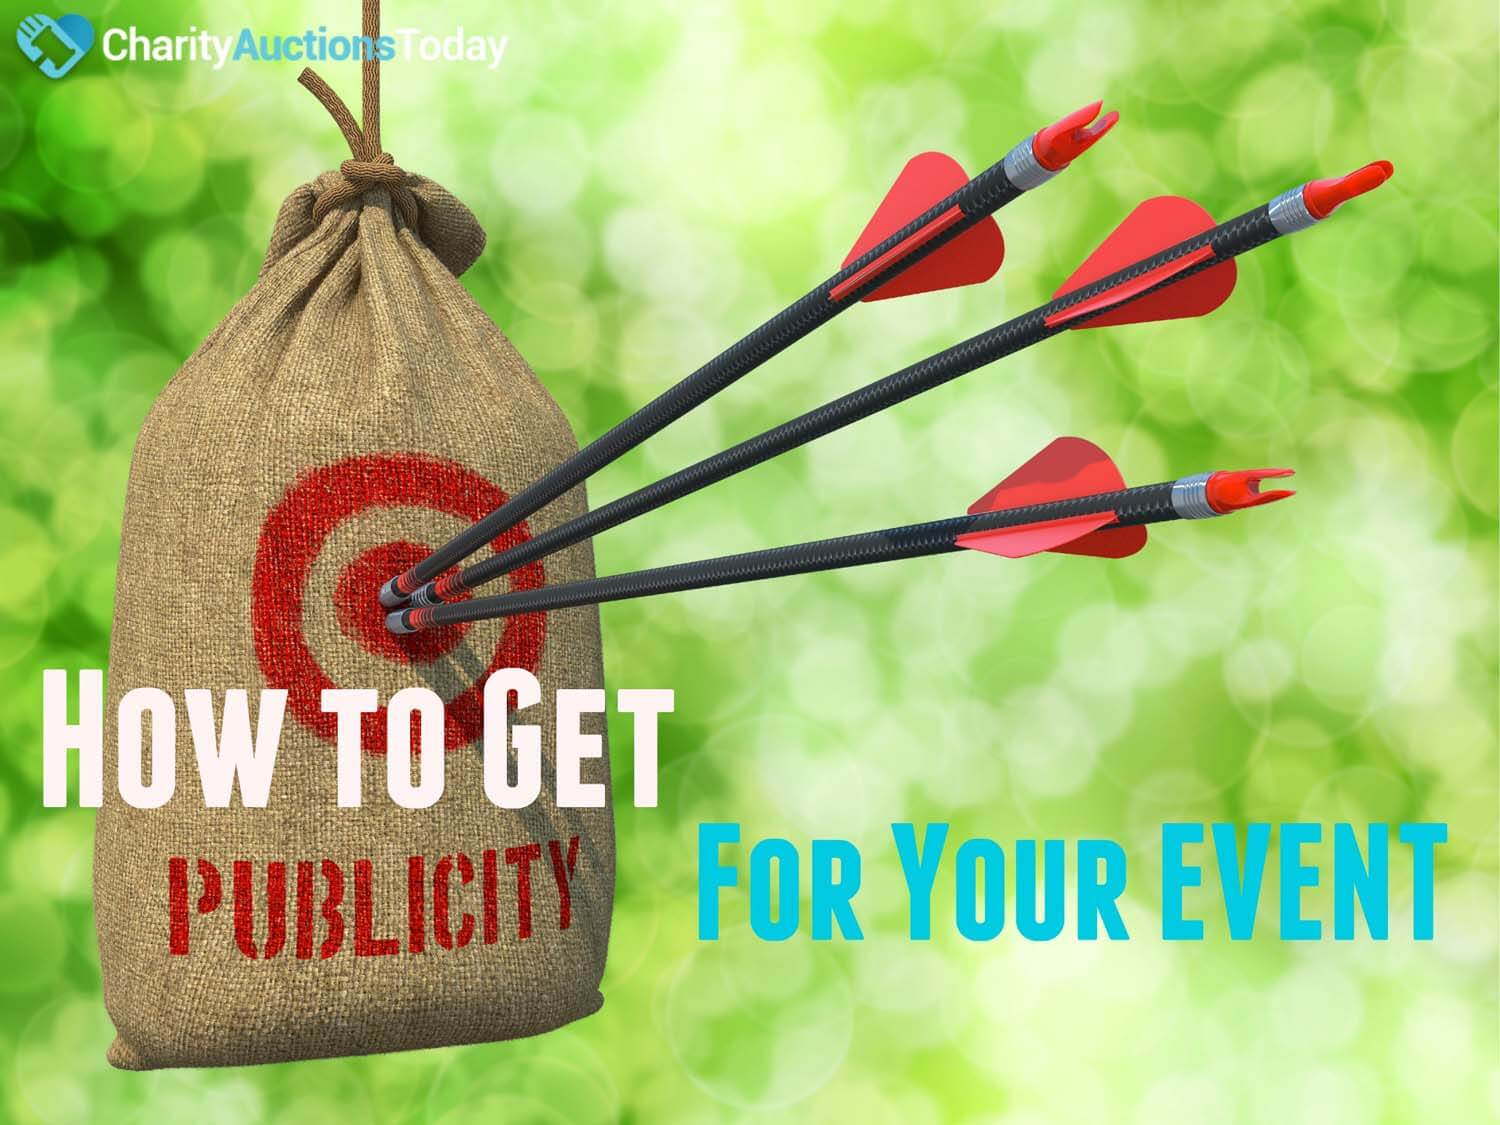 Publicity - Three Arrows Hit in Red Target on a Hanging Sack on Green Bokeh Background.